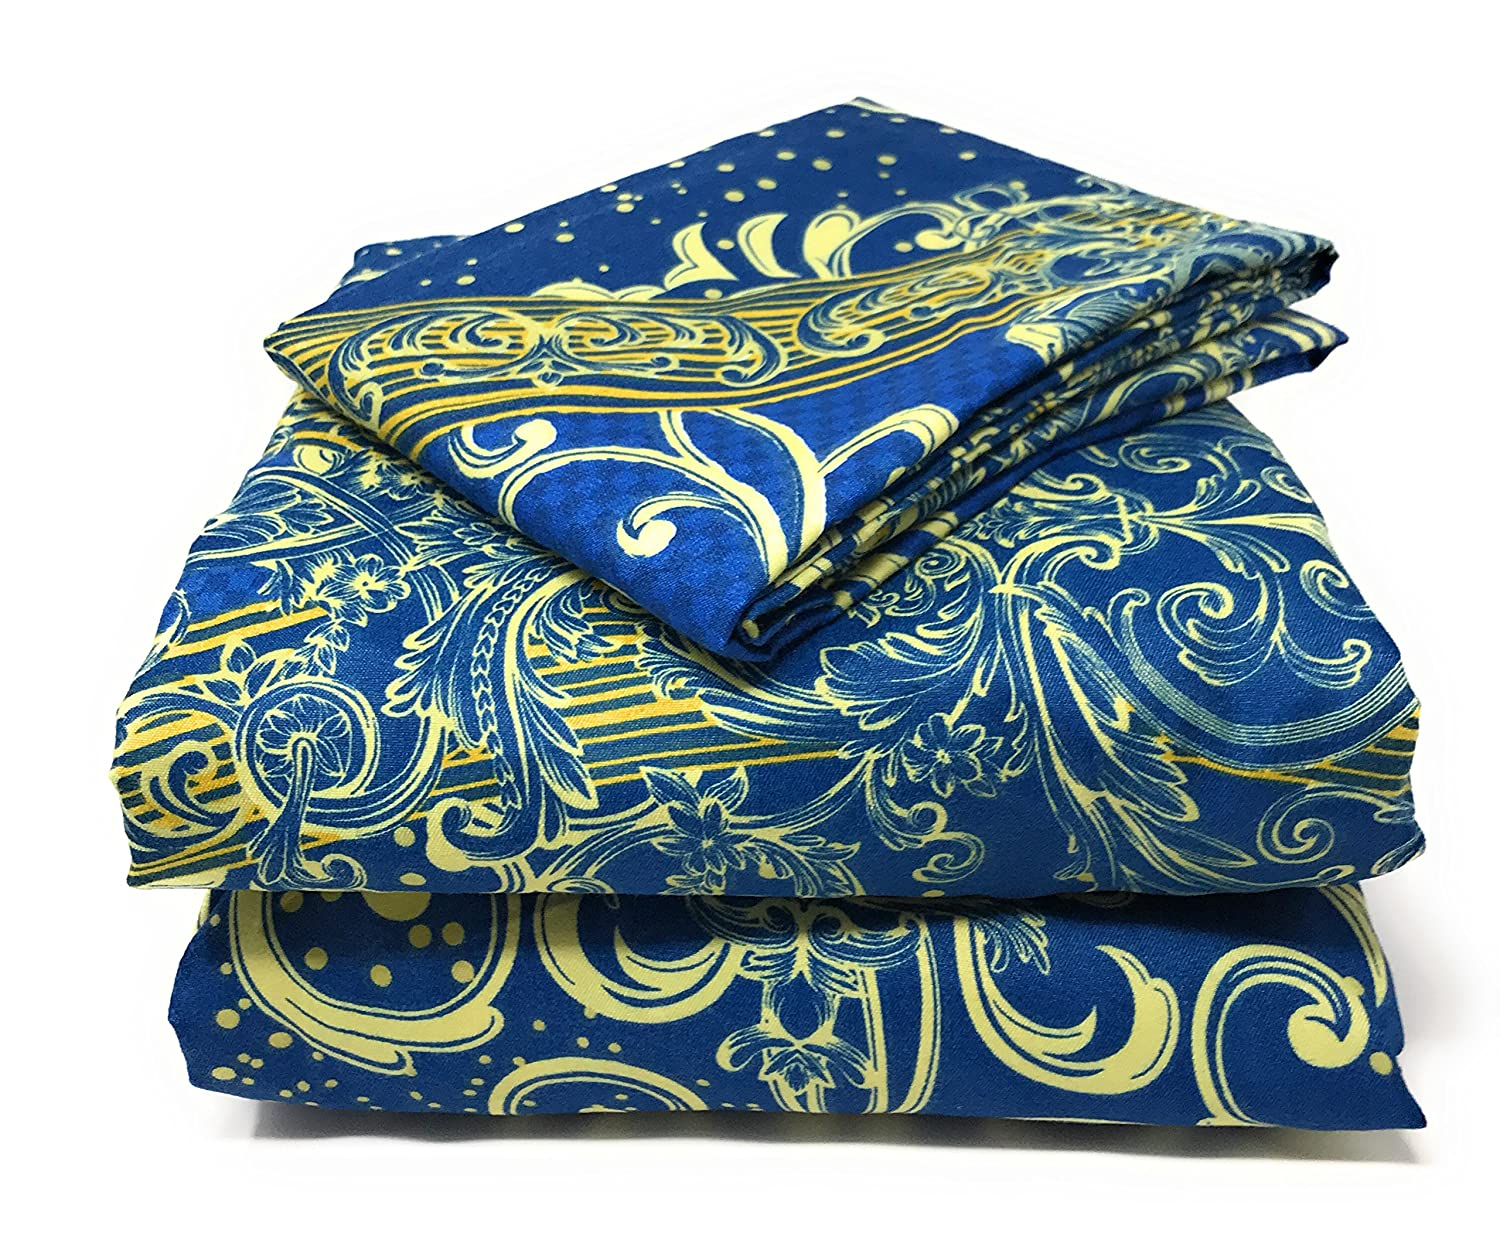 Luxurious Cotton Deep Pocket Sheet with Pillowcases Frozen Forest Tache White Blue Paisley Damask Fitted Sheet Only 3 Piece Set California King